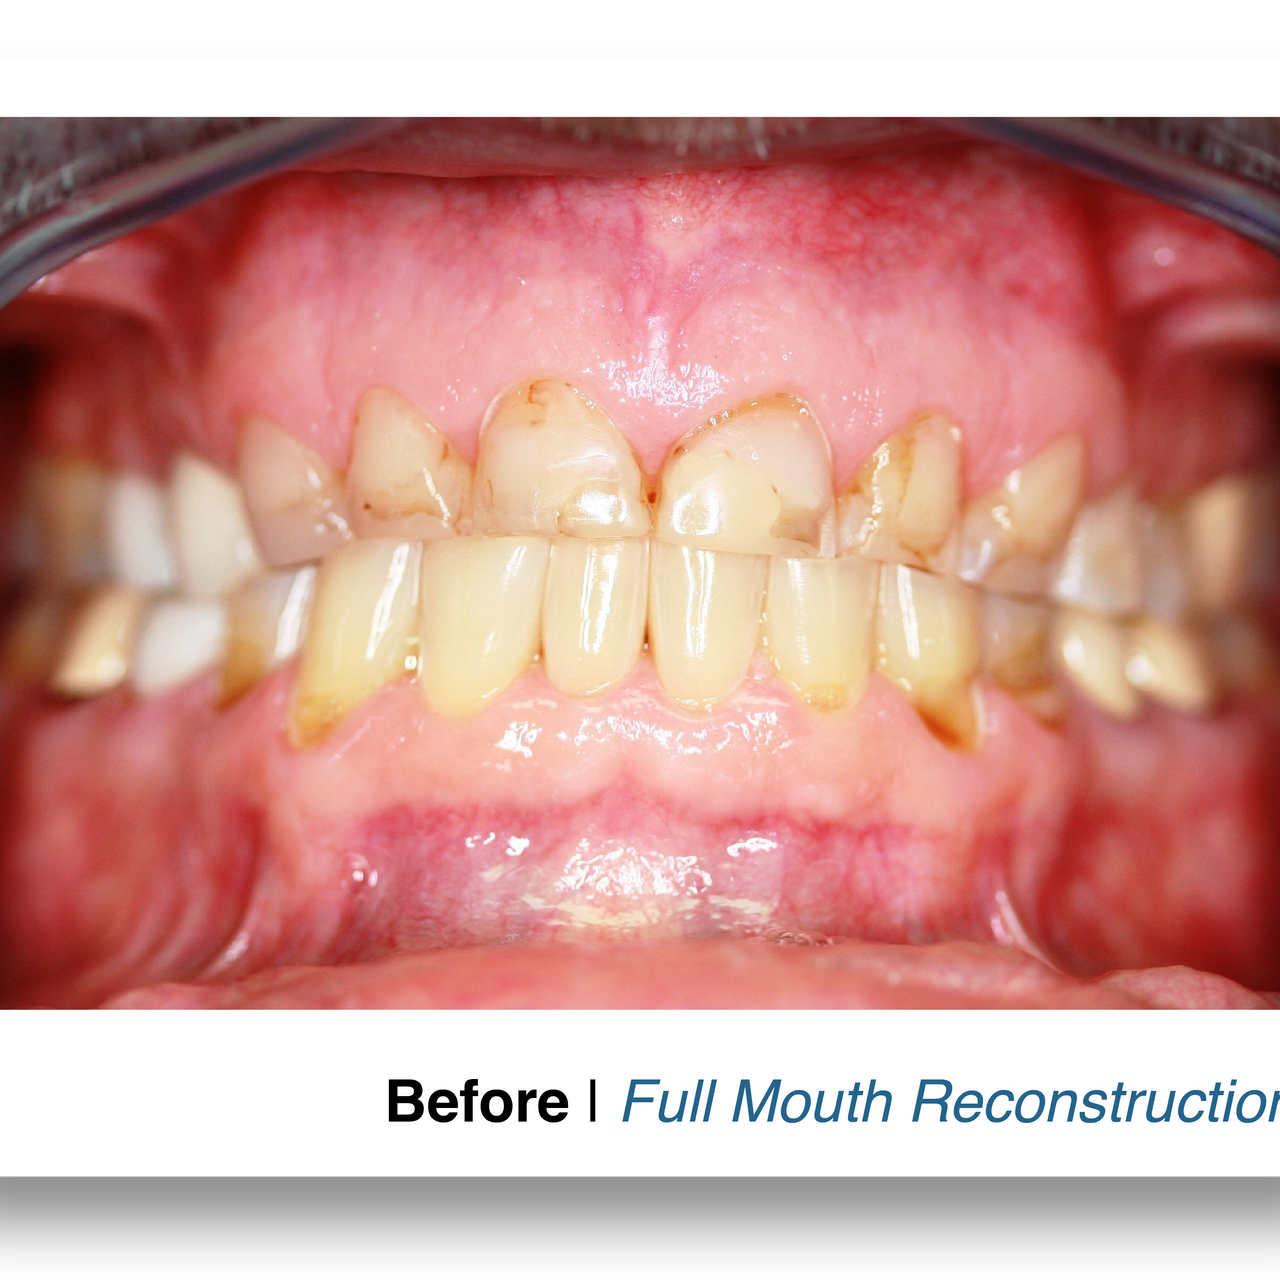 Before - Full Mouth Reconstruction